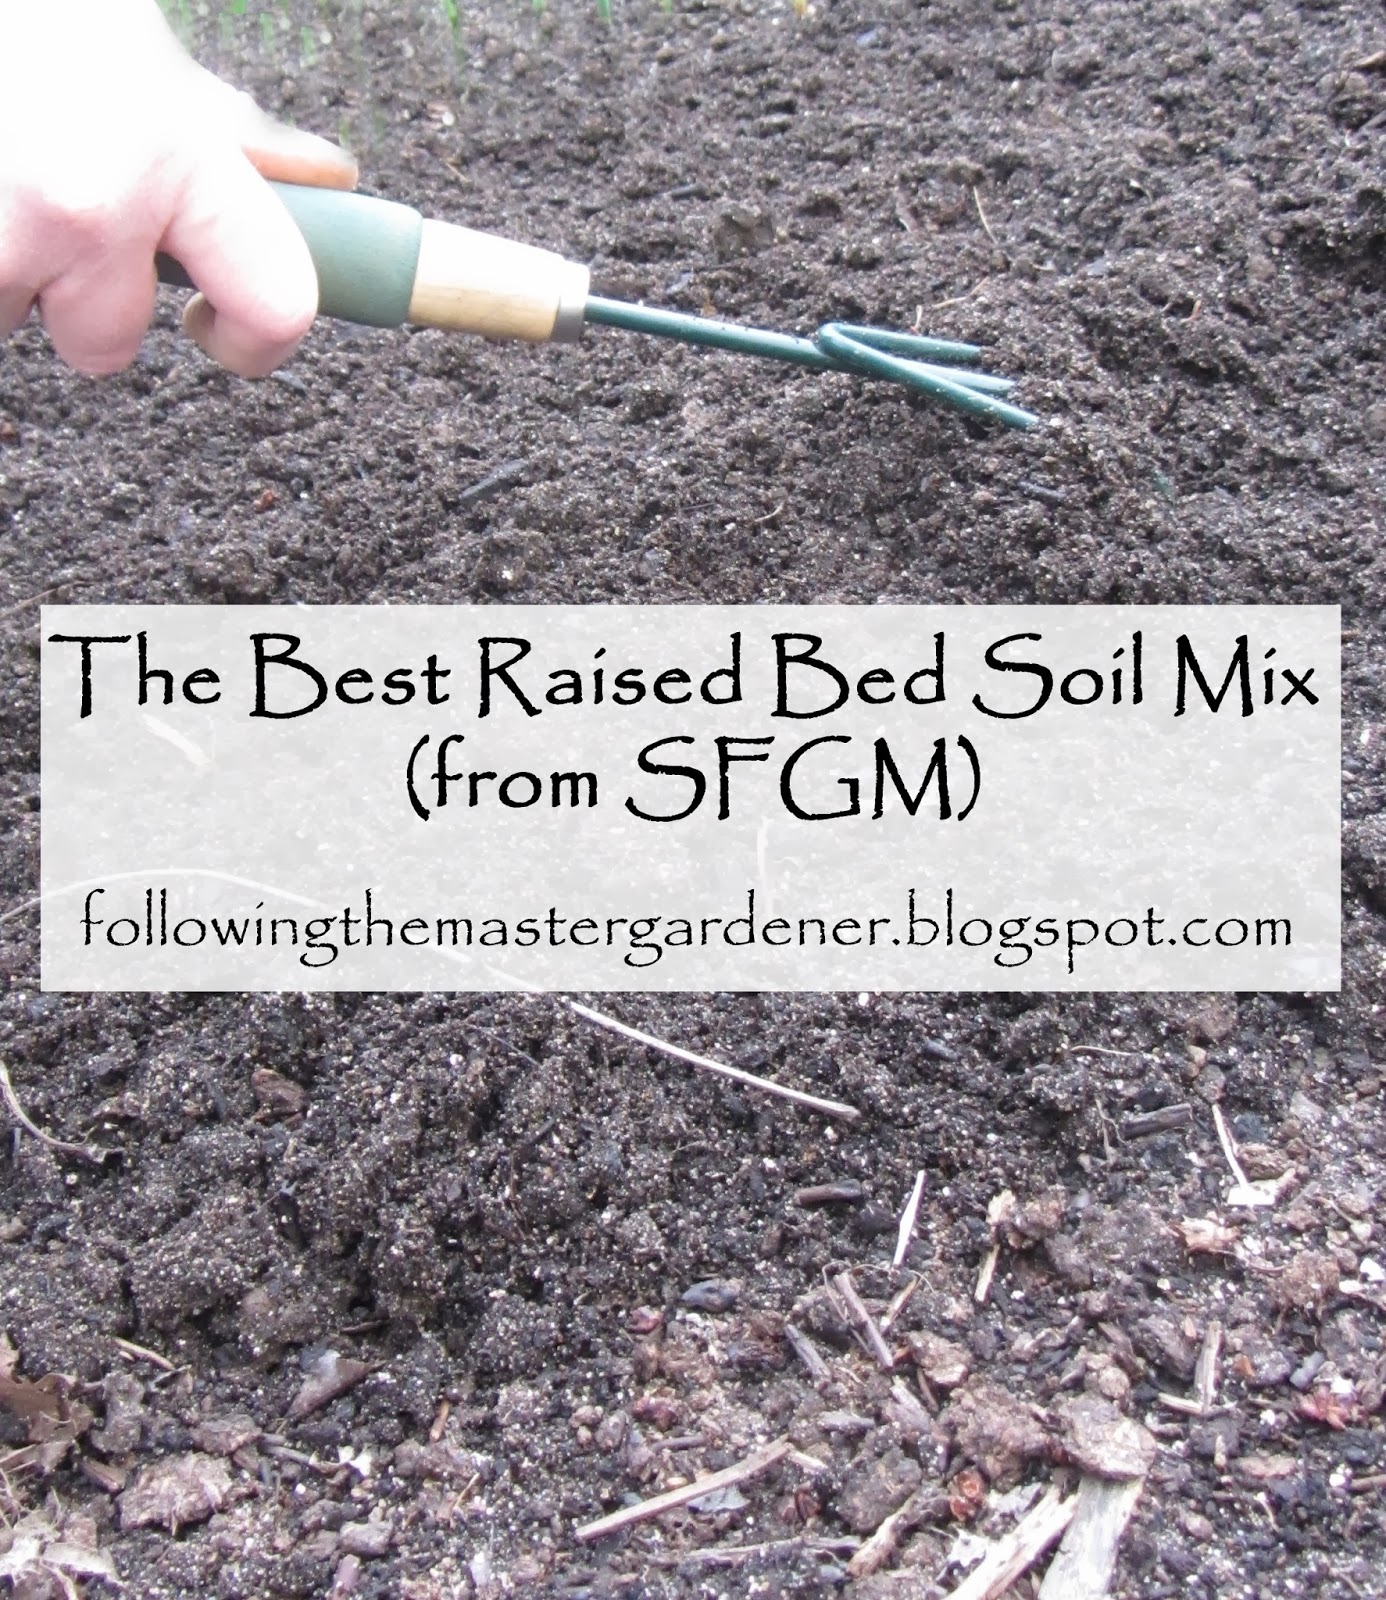 Following The Master Gardener: The Best Raised Bed Soil